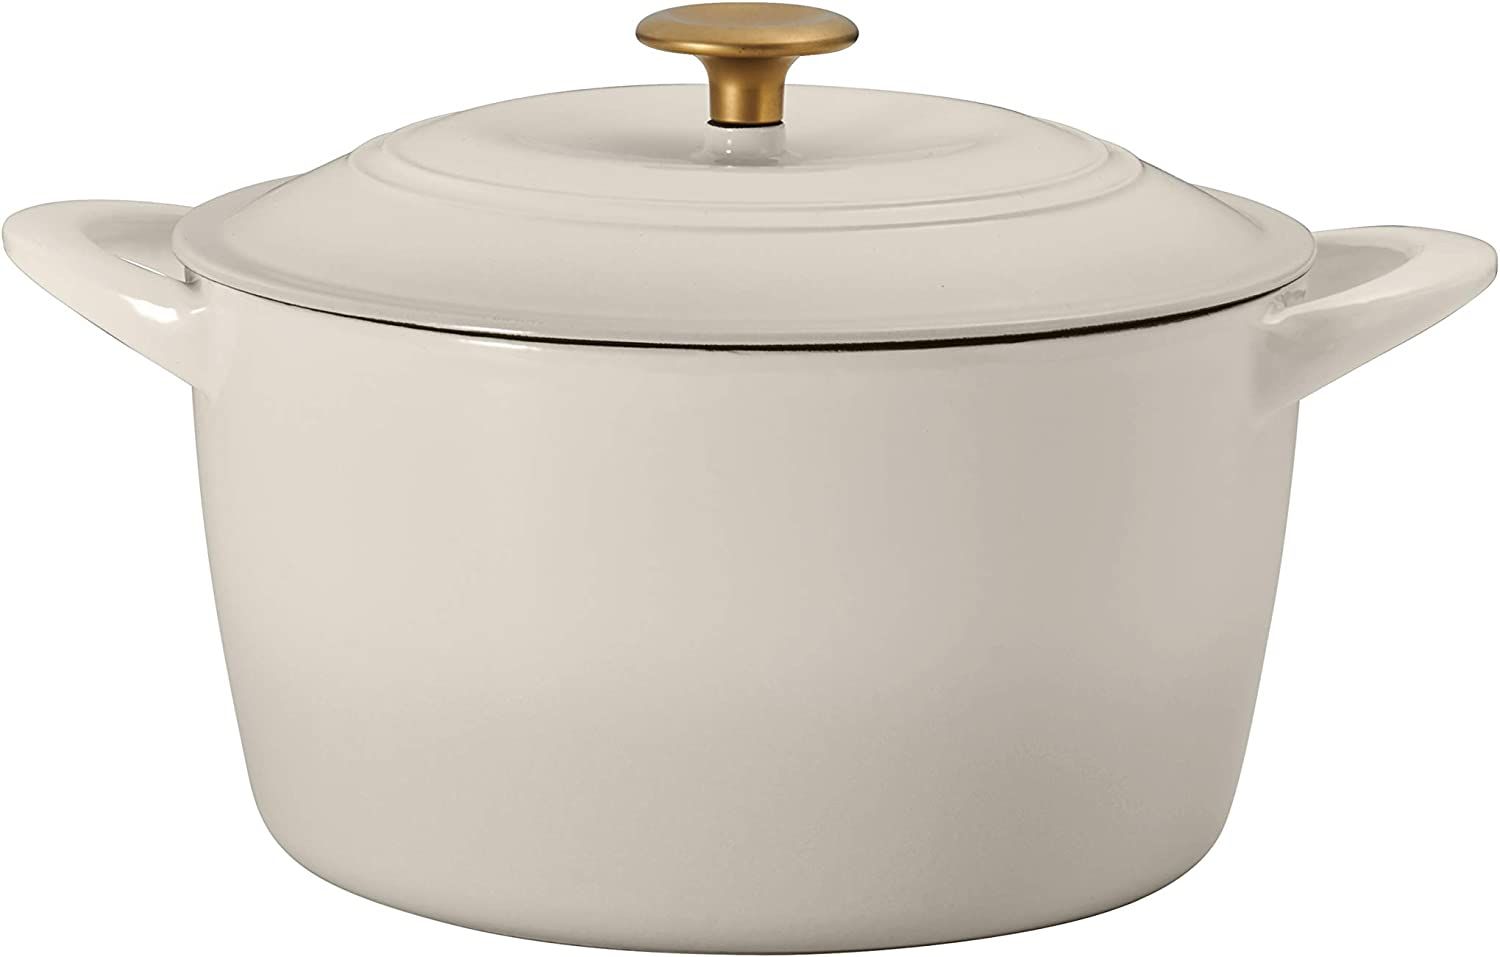 Tramontina 7 Qt Enameled Cast Iron Covered Tall Round Dutch Oven (Latte Gold Knob) - 80131/357DS